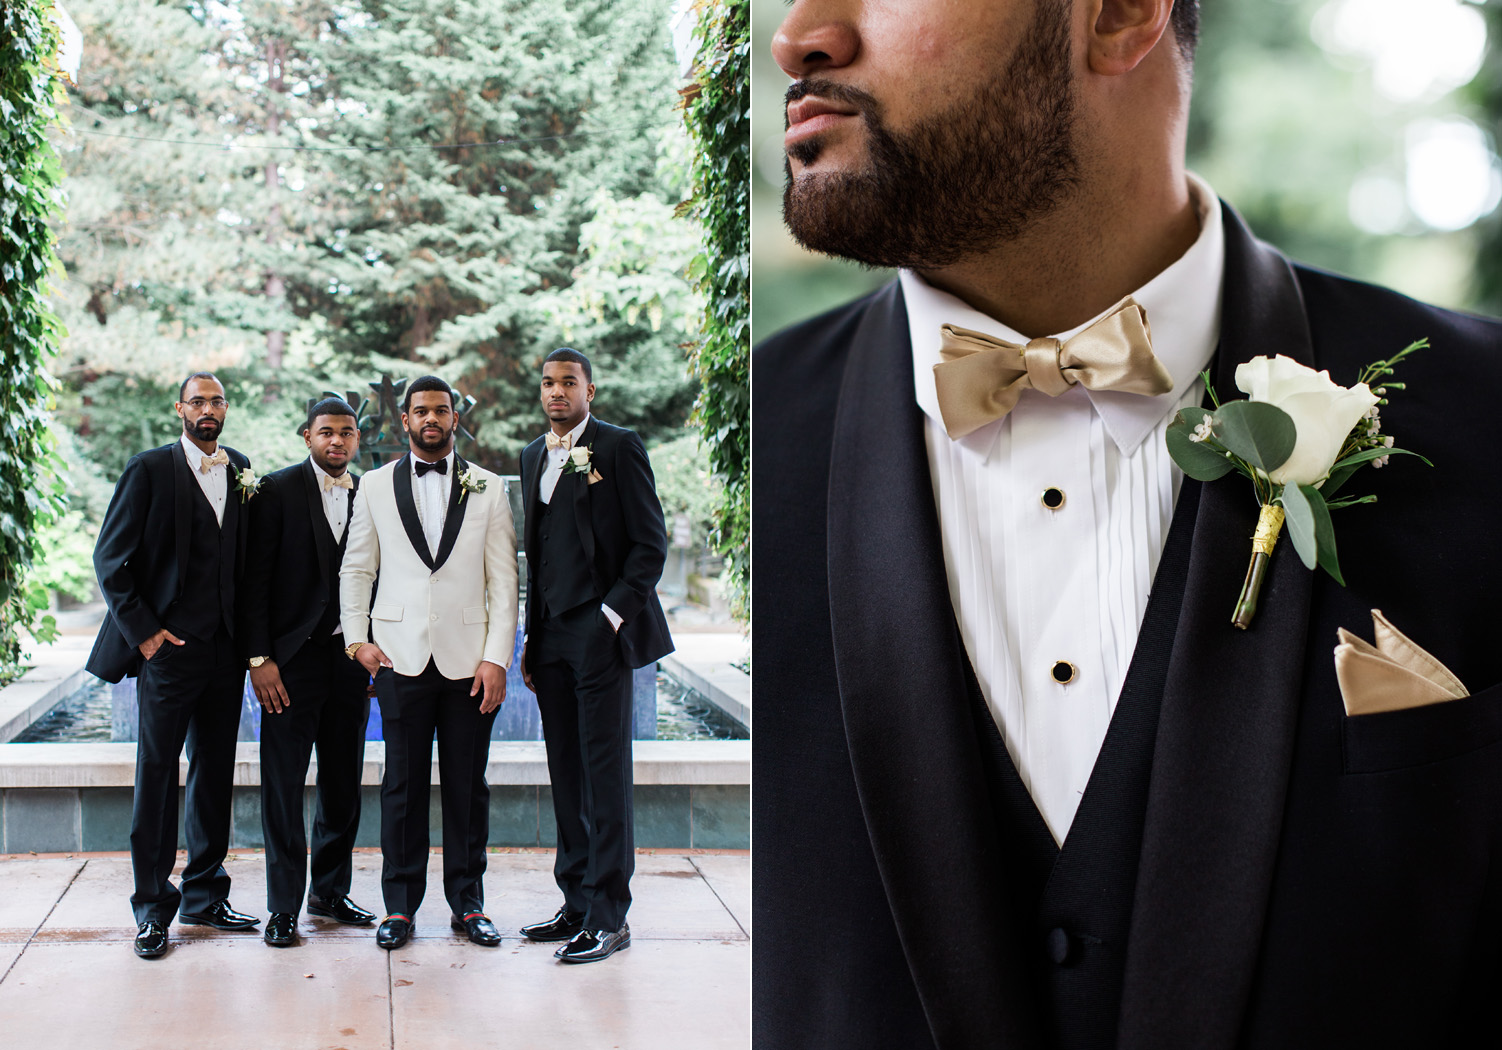 black tie groom and groomsmen wedding attire seattle.jpg